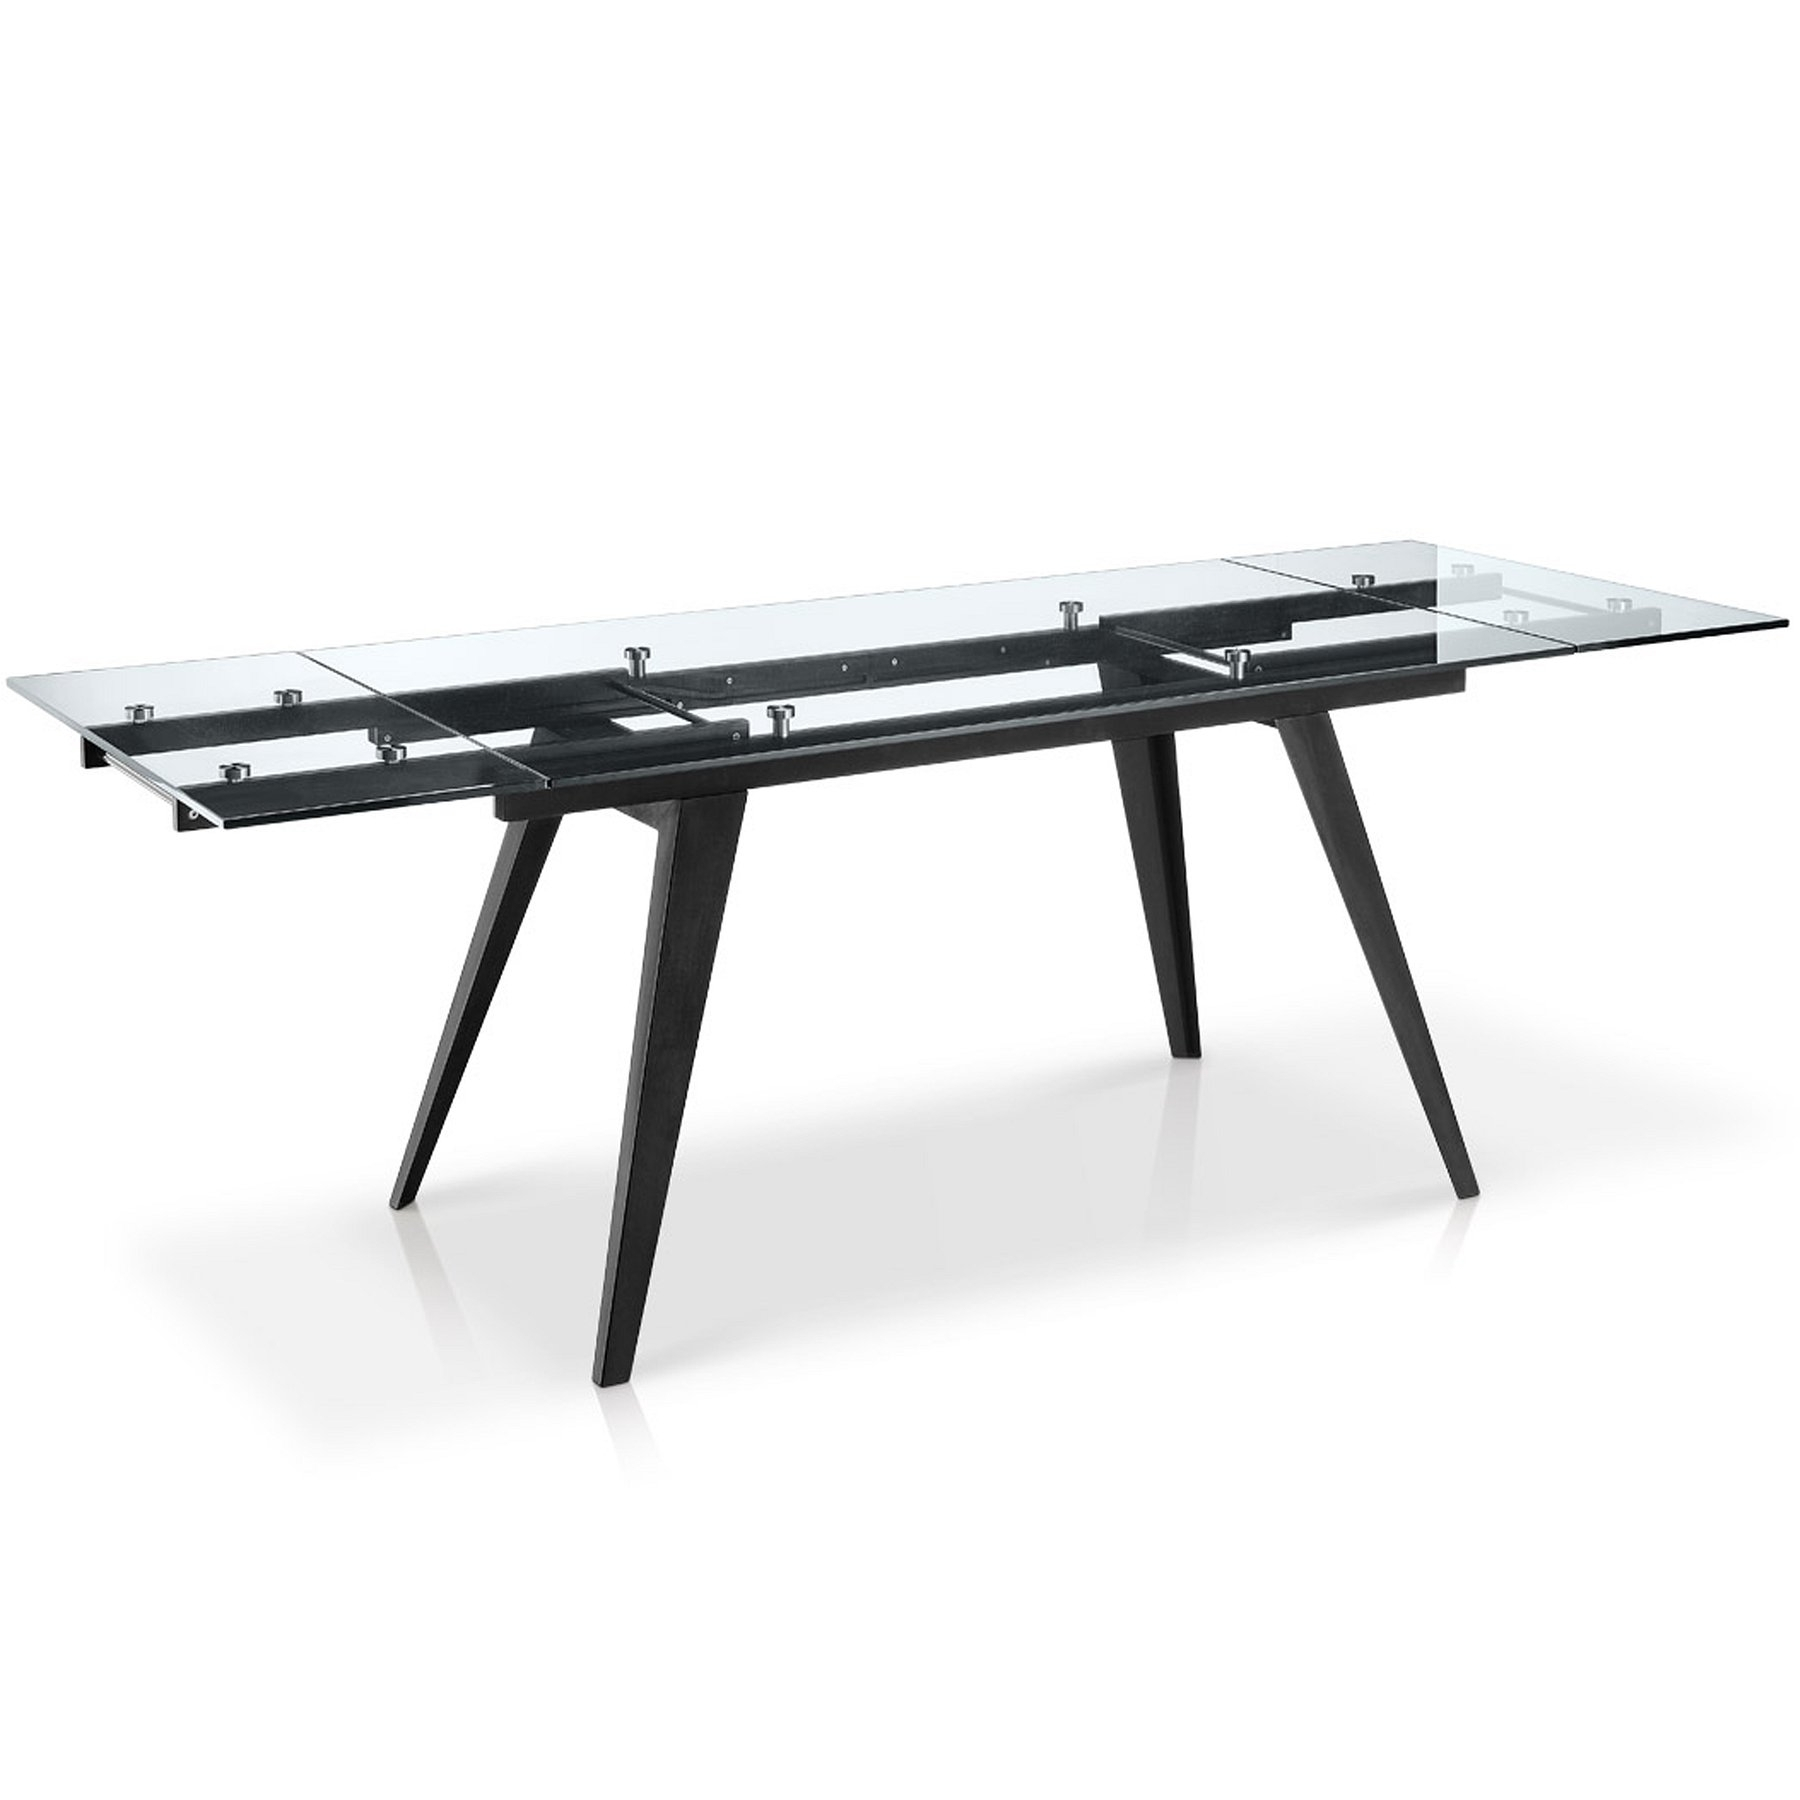 Sharp Dining Table With Regard To Most Up To Date Rocco 7 Piece Extension Dining Sets (View 16 of 25)